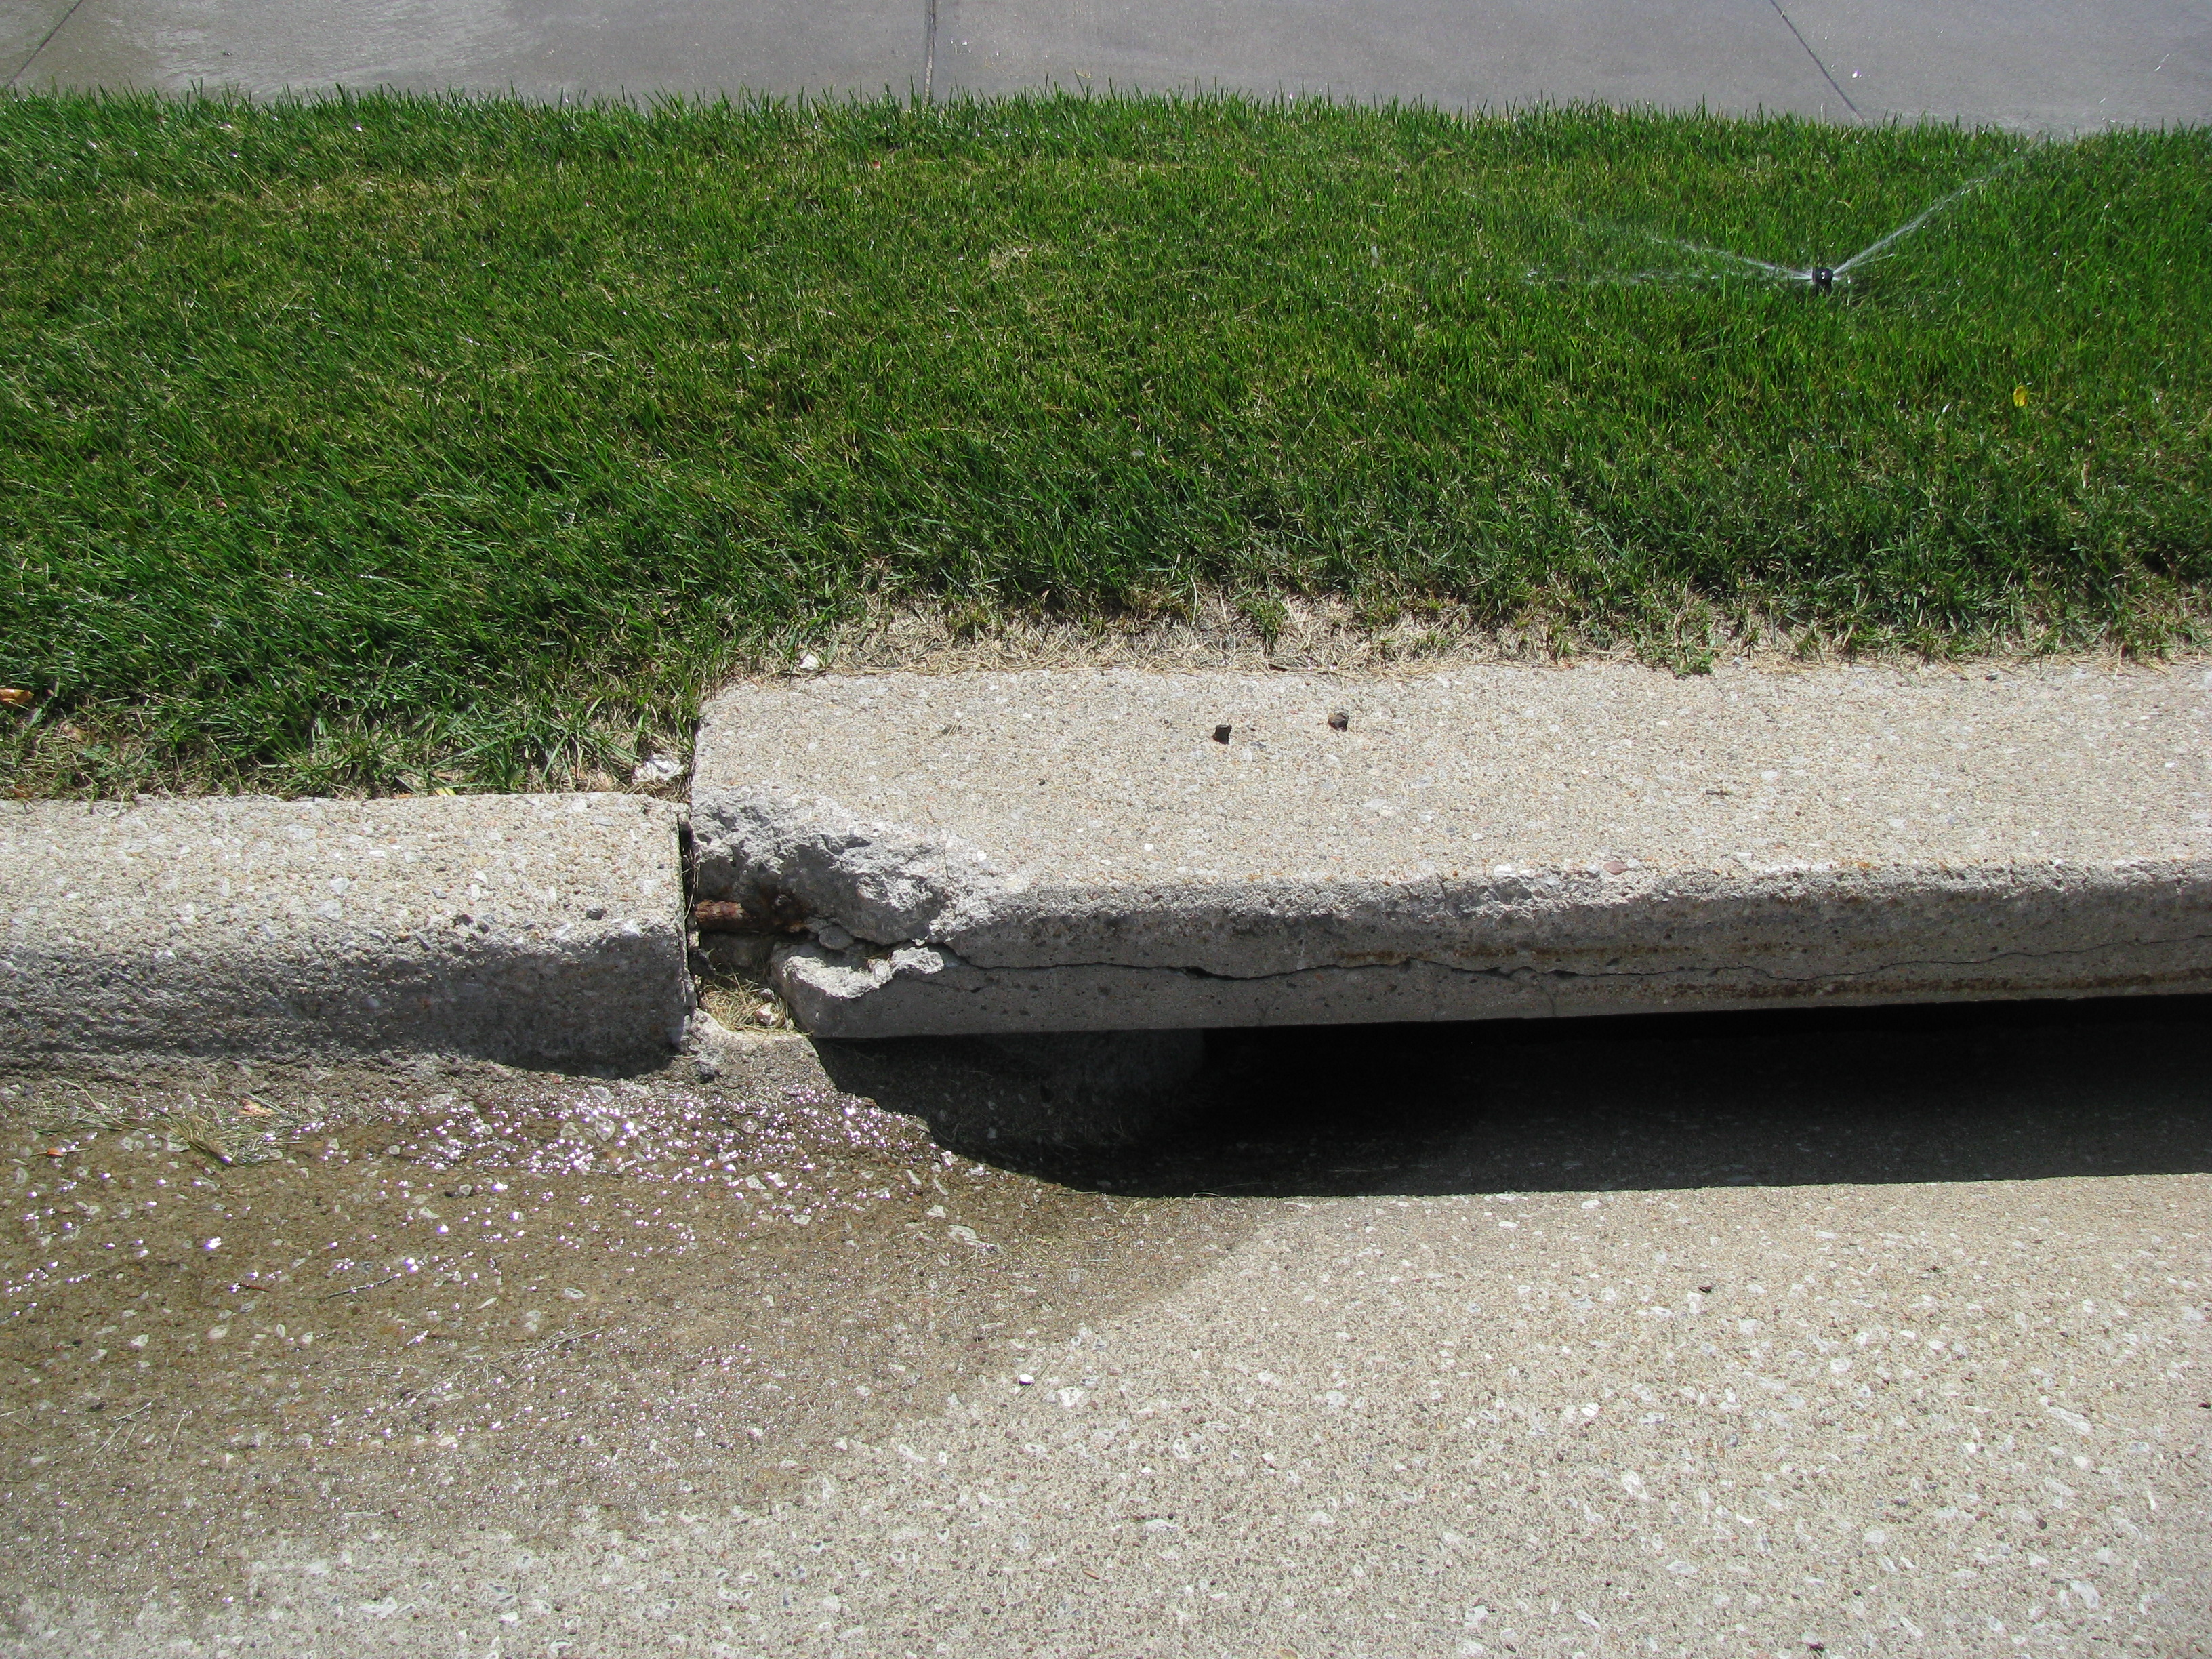 Rain water and irrigation go to the storm drain